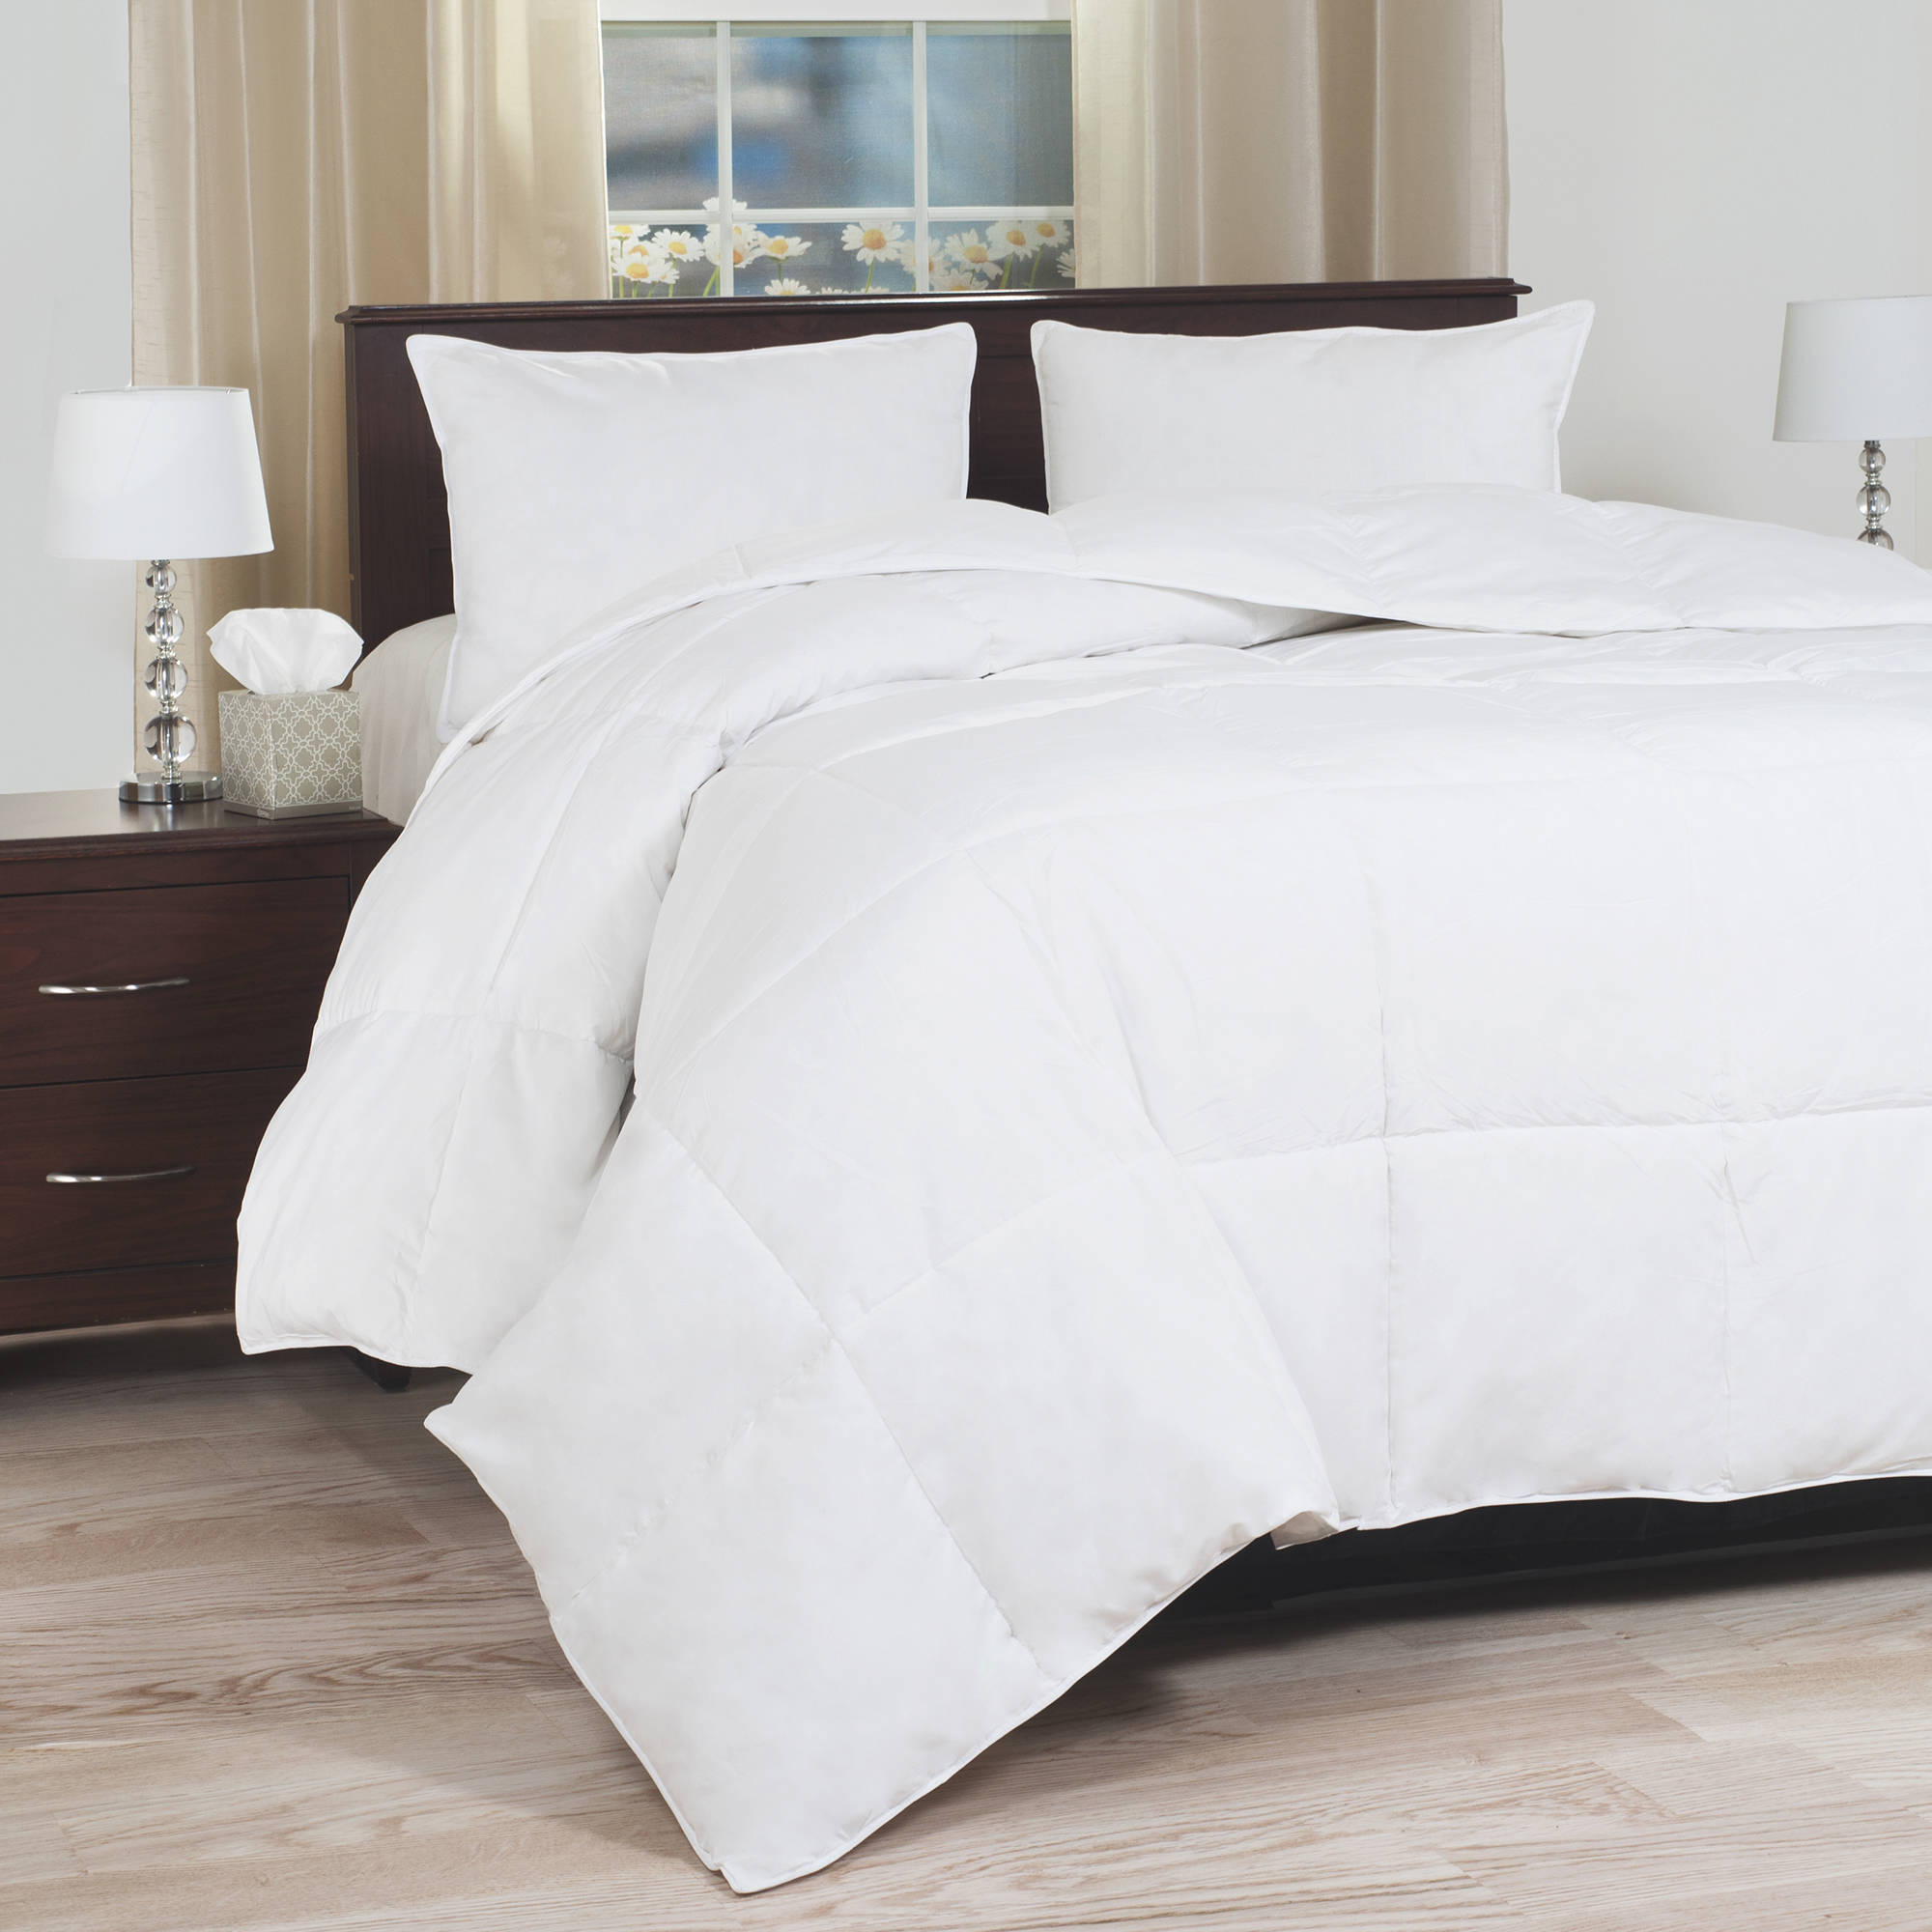 Somerset Home Down Blend Overfilled Bedding Comforter